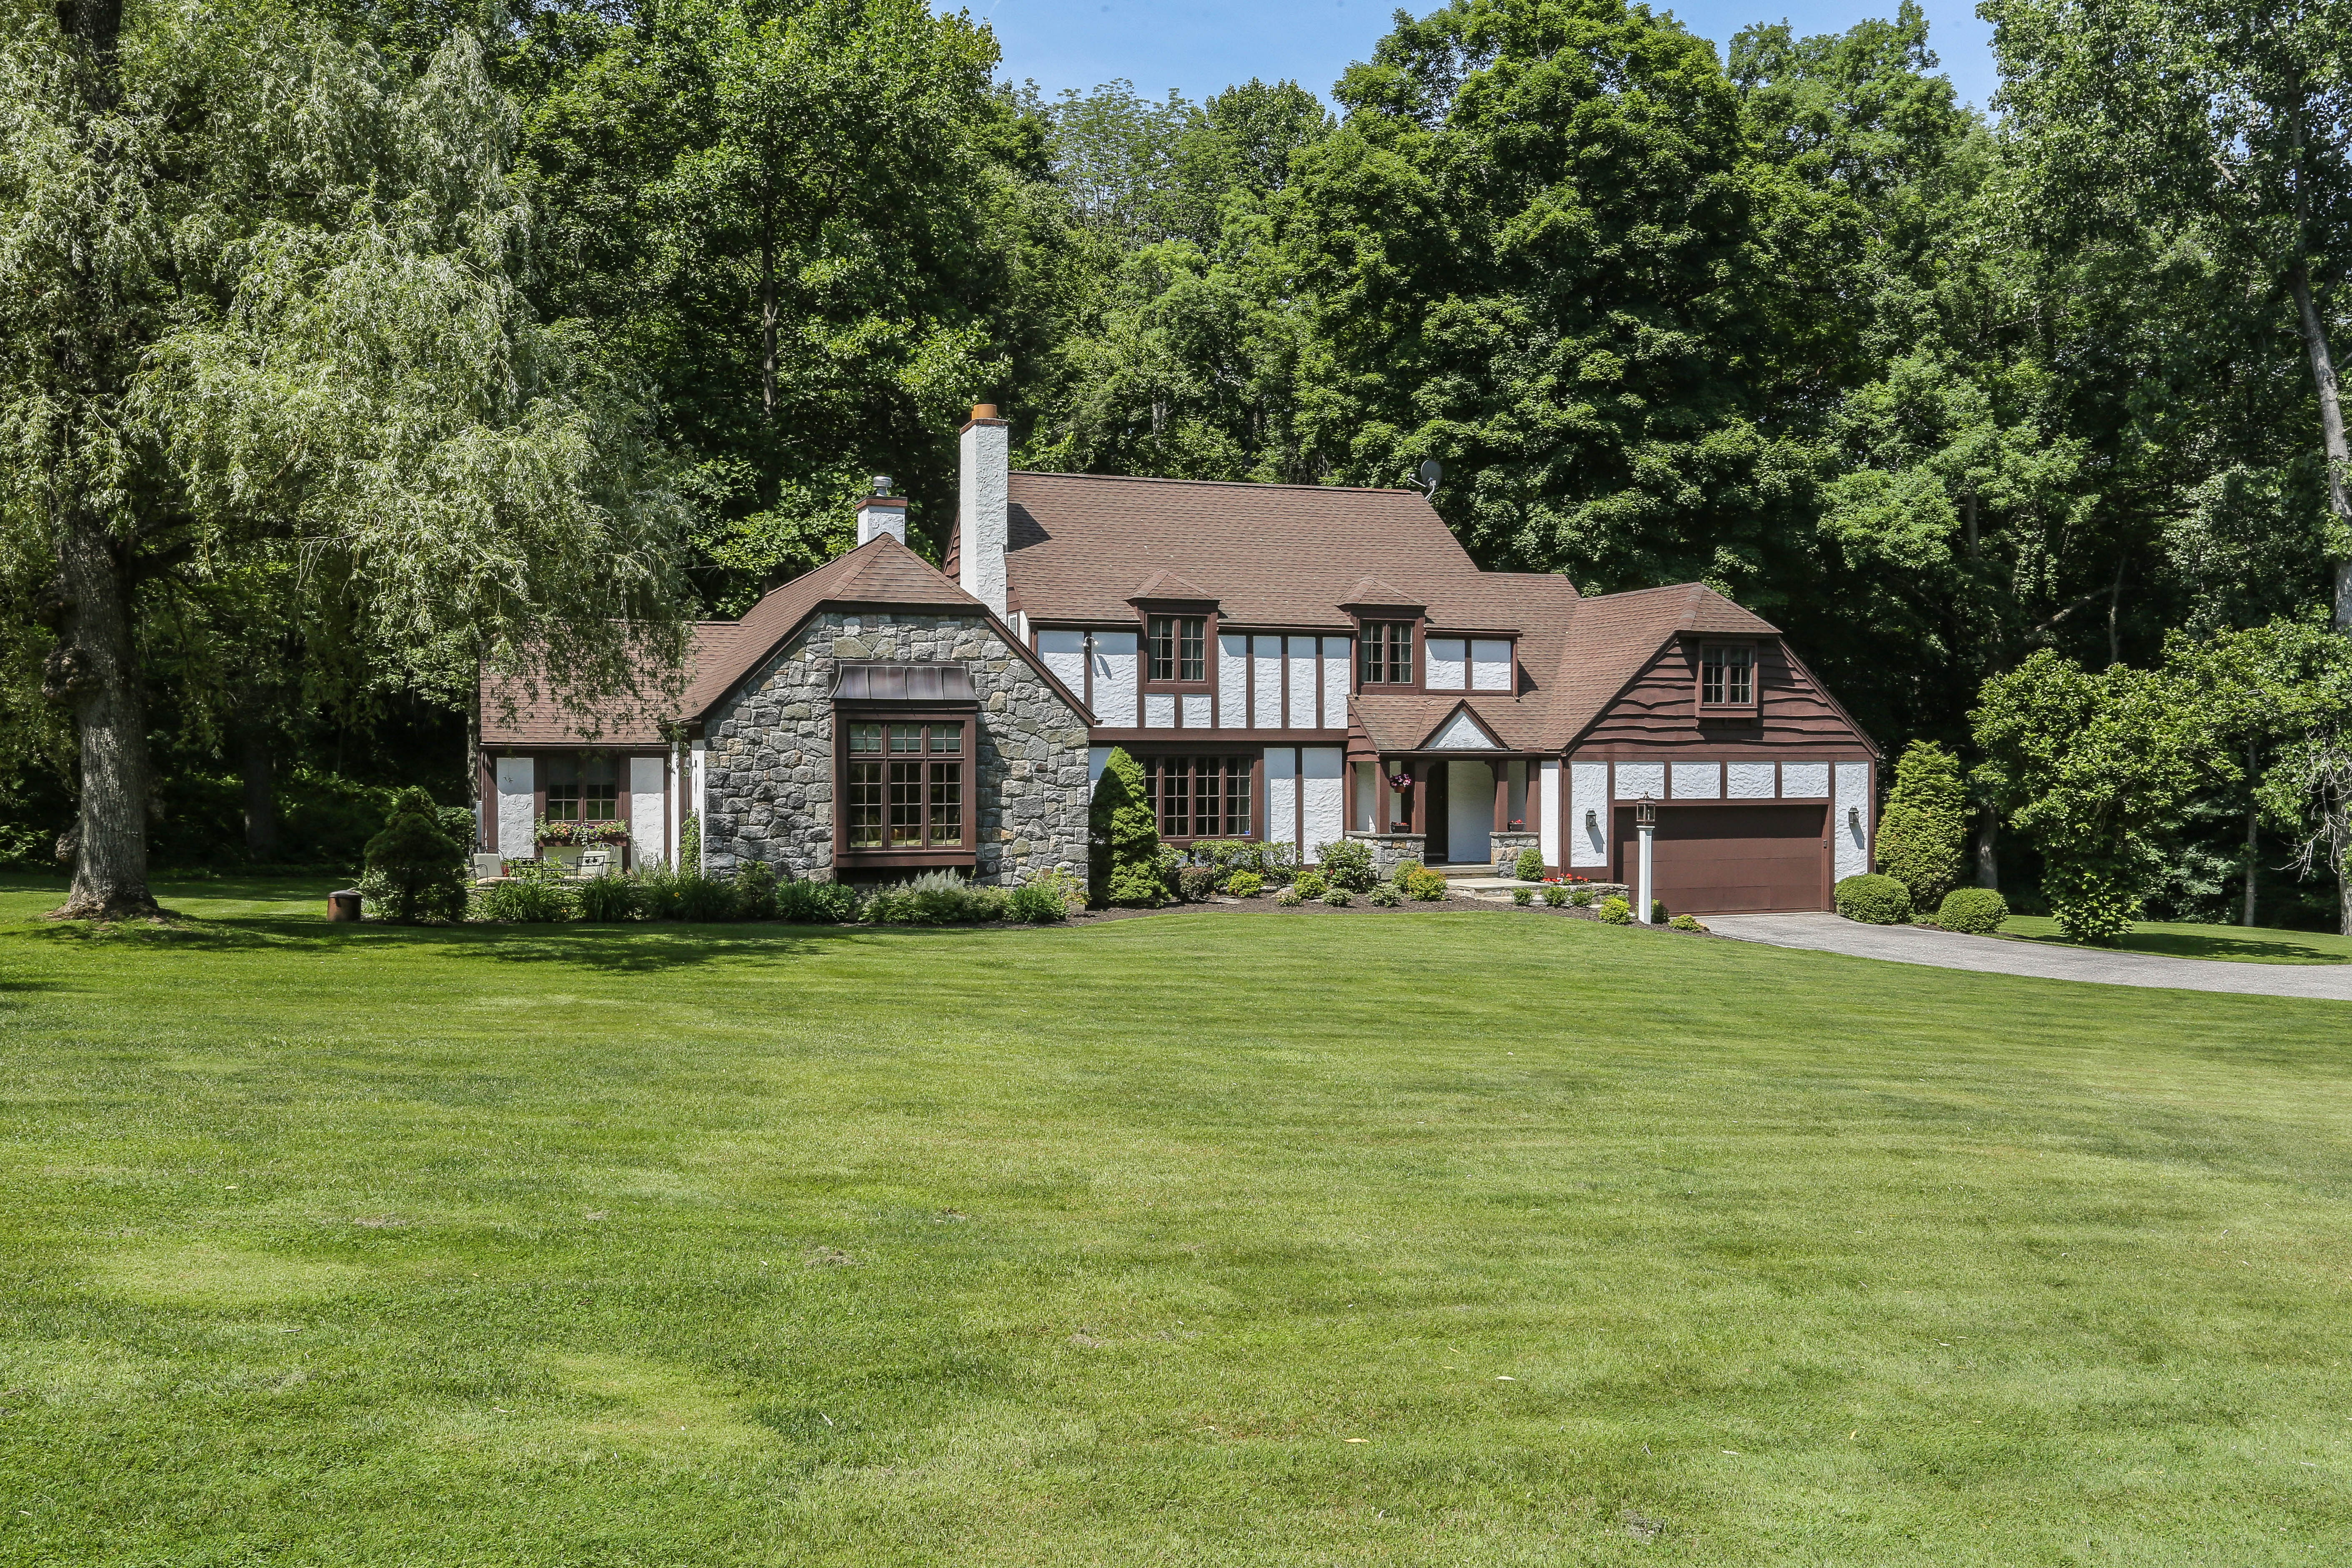 Single Family Home for Sale at Manor Home Of Distinction On Storybrook Property 33 Obtuse Road North Brookfield, Connecticut 06804 United States